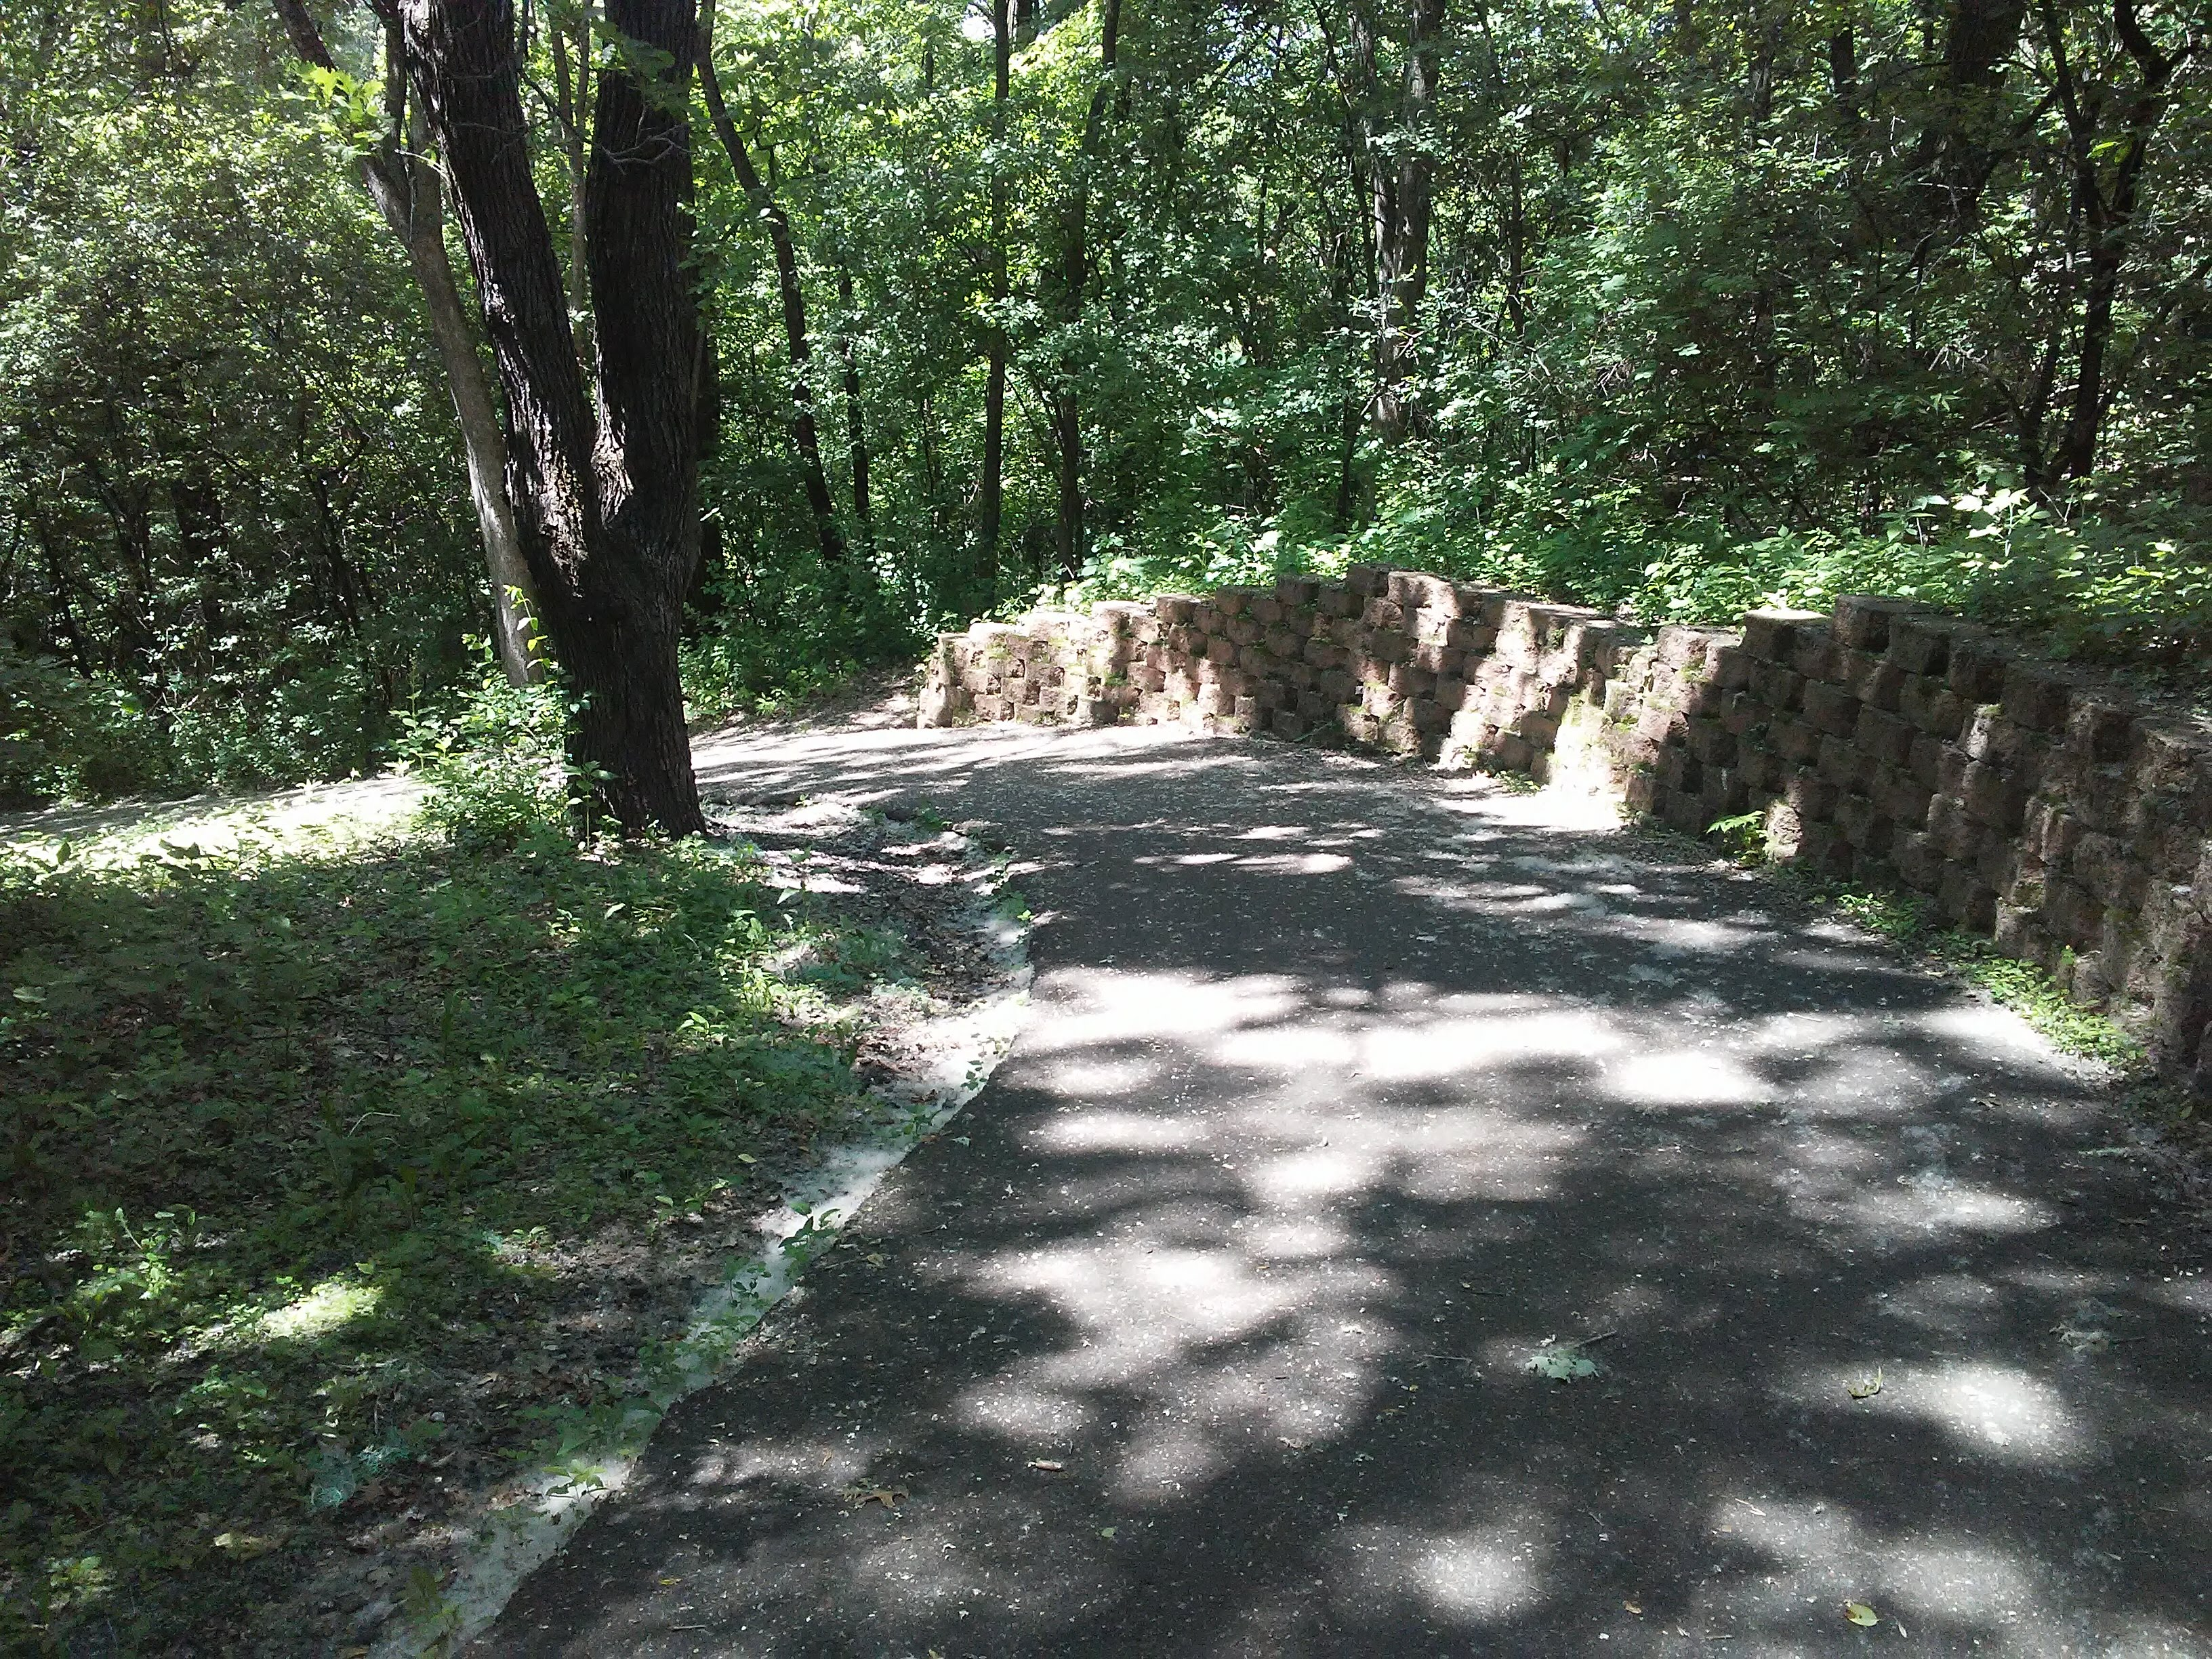 paved trail going downhill in woods, a brick retaining wall